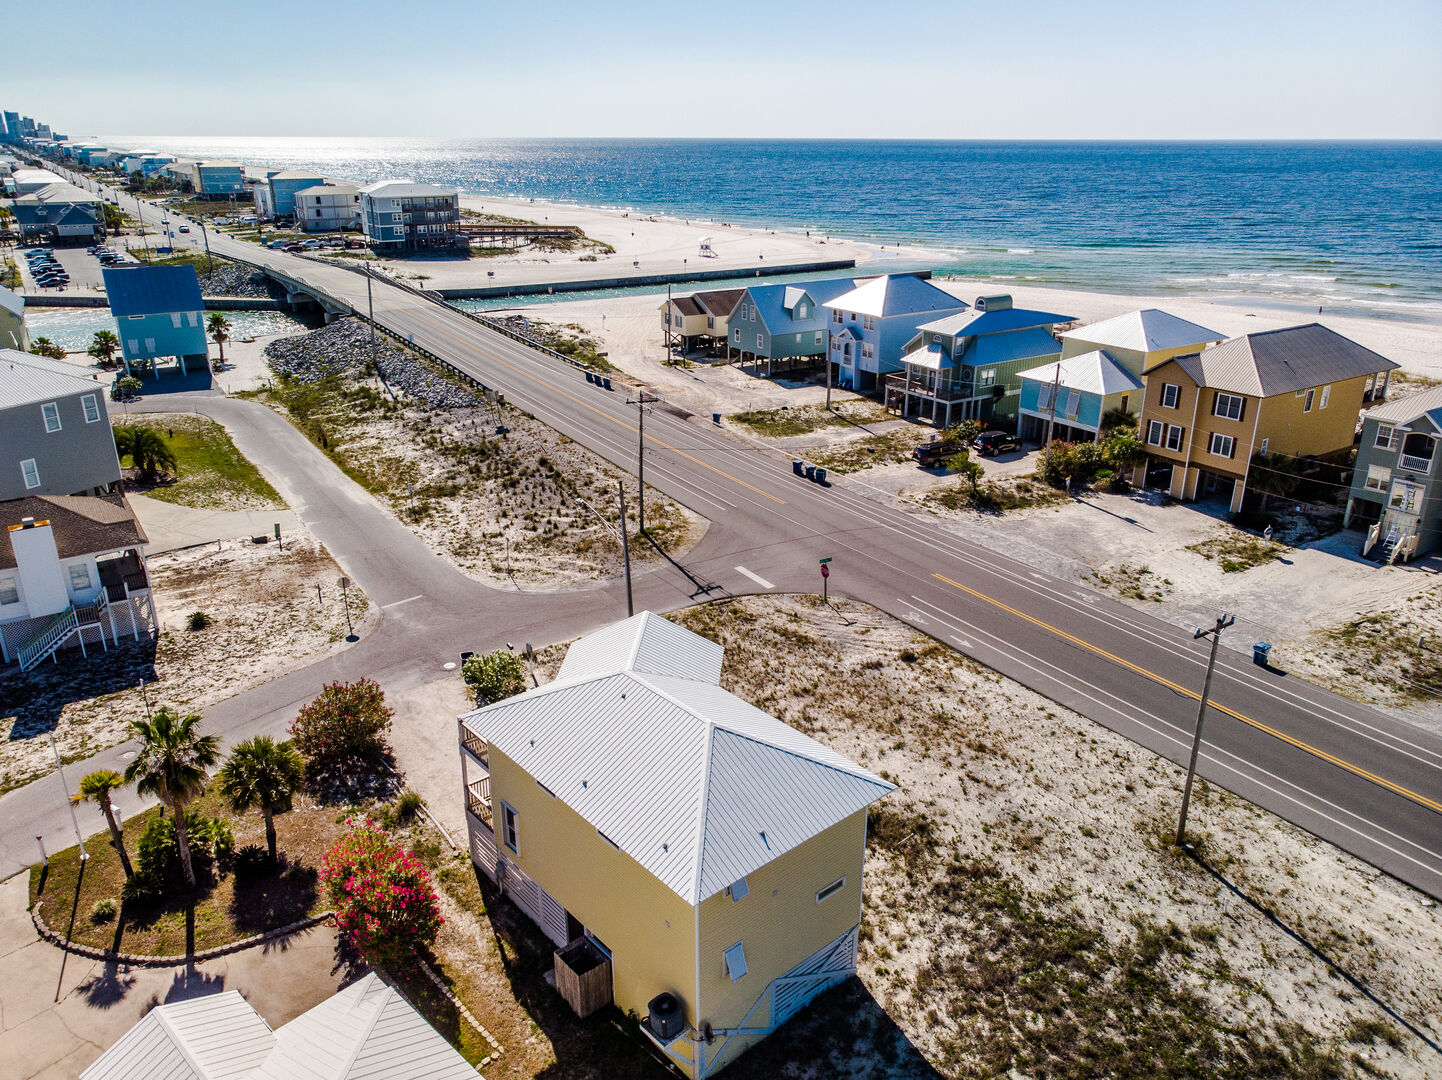 Aerial Picture of our Home, the Street, and a View of the Beach.